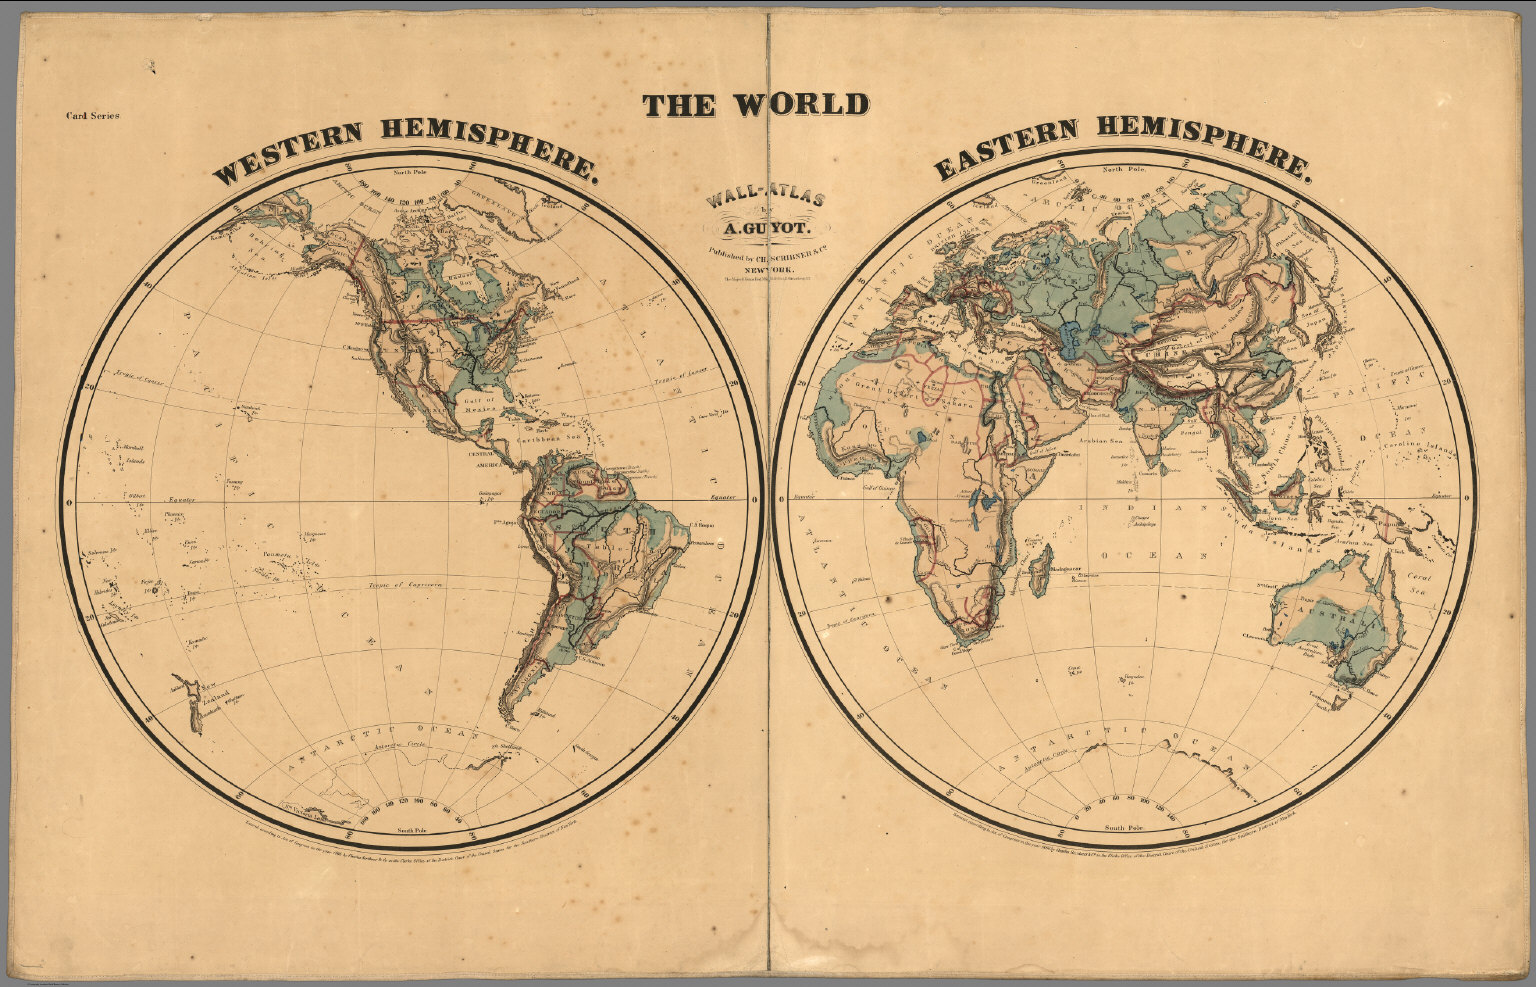 The world western hemisphere eastern hemisphere david rumsey the world western hemisphere eastern hemisphere david rumsey historical map collection gumiabroncs Image collections